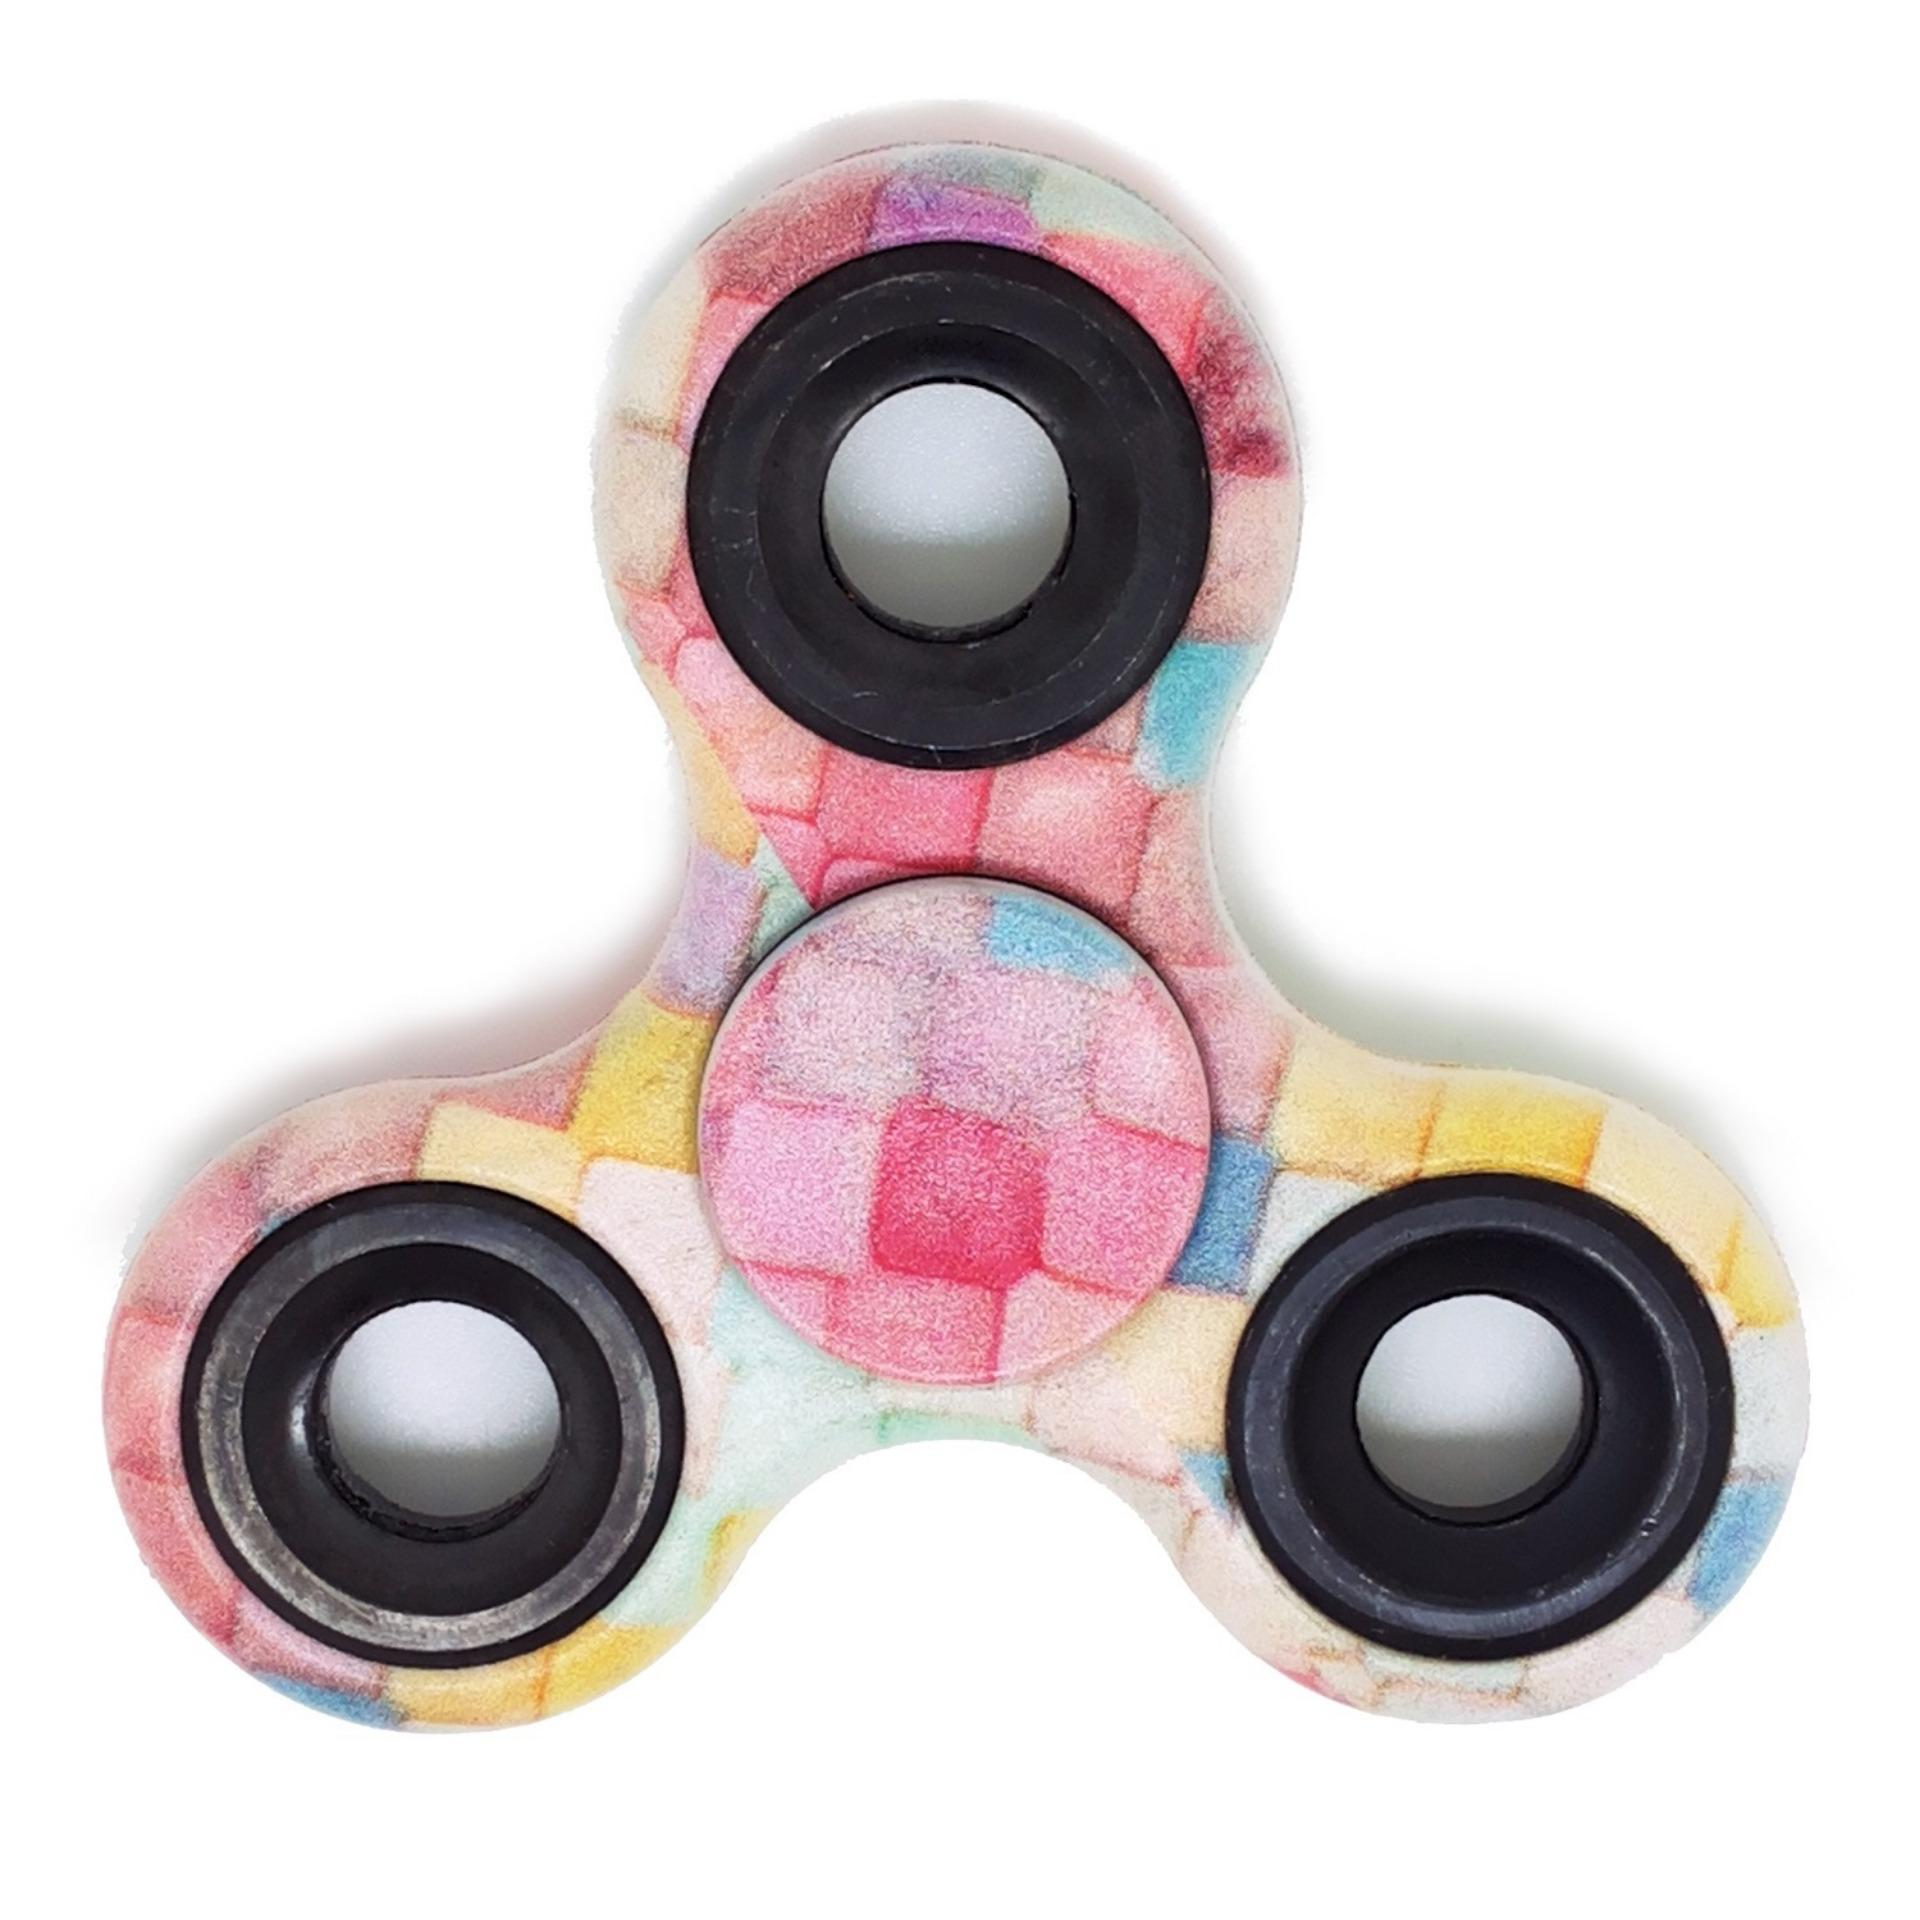 Fidget Spinner Glow In The Dark Toys Spiner Mainan Jari Putar Spec Multihomeware Led Camouflage Camo Metal Hand Finger For Focus Anxiety Stress Relief Edc Tri